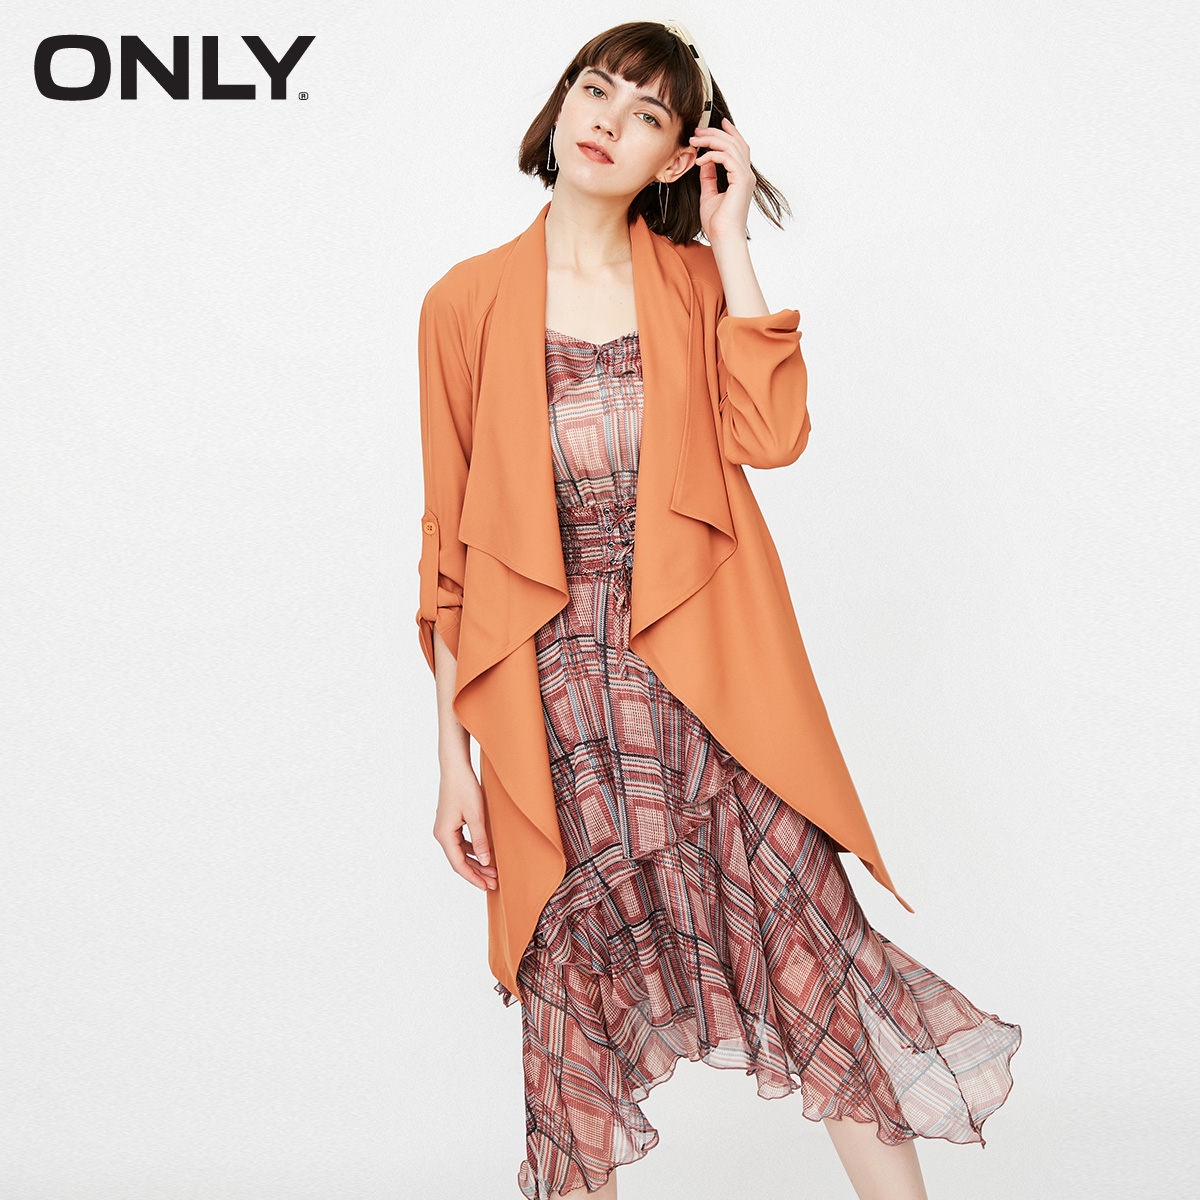 ONLY Spring Summer New Women's Loose Fit Cinched Waist Lace-up Drapery Wind Coat |118336507